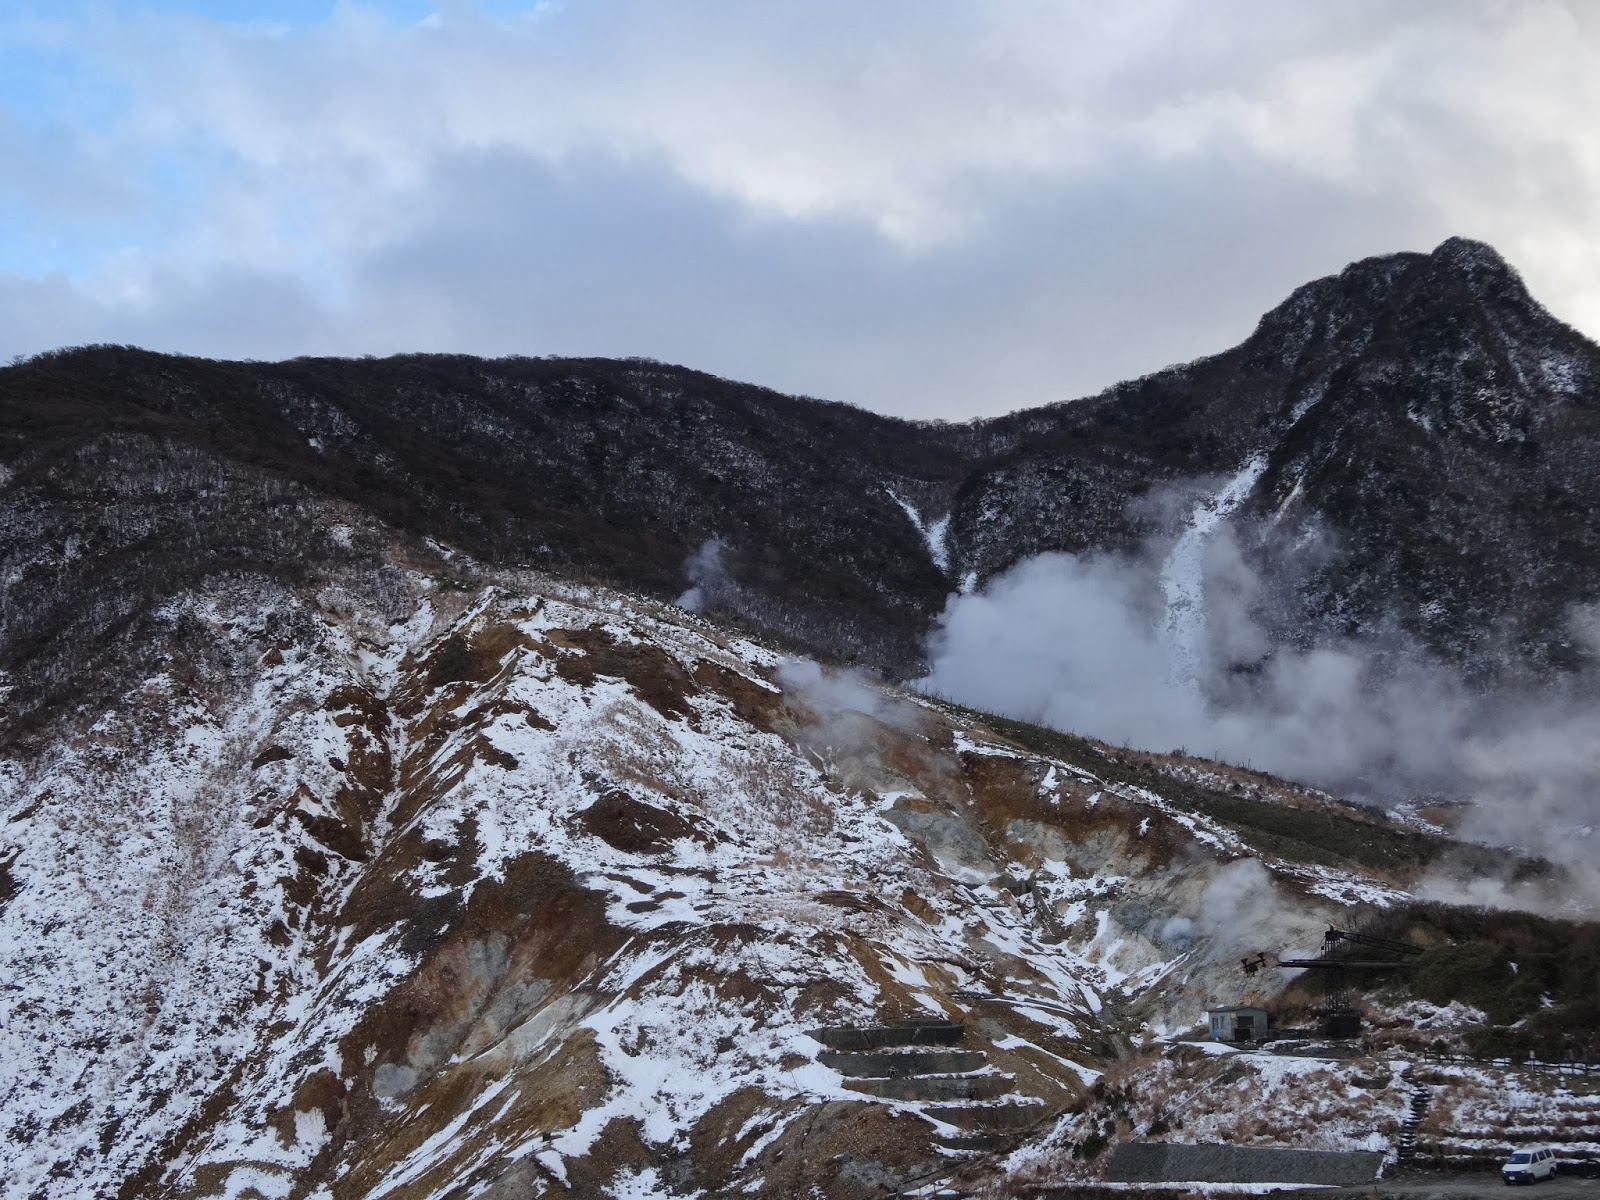 Snow and sulphur spring fumes in Hakone